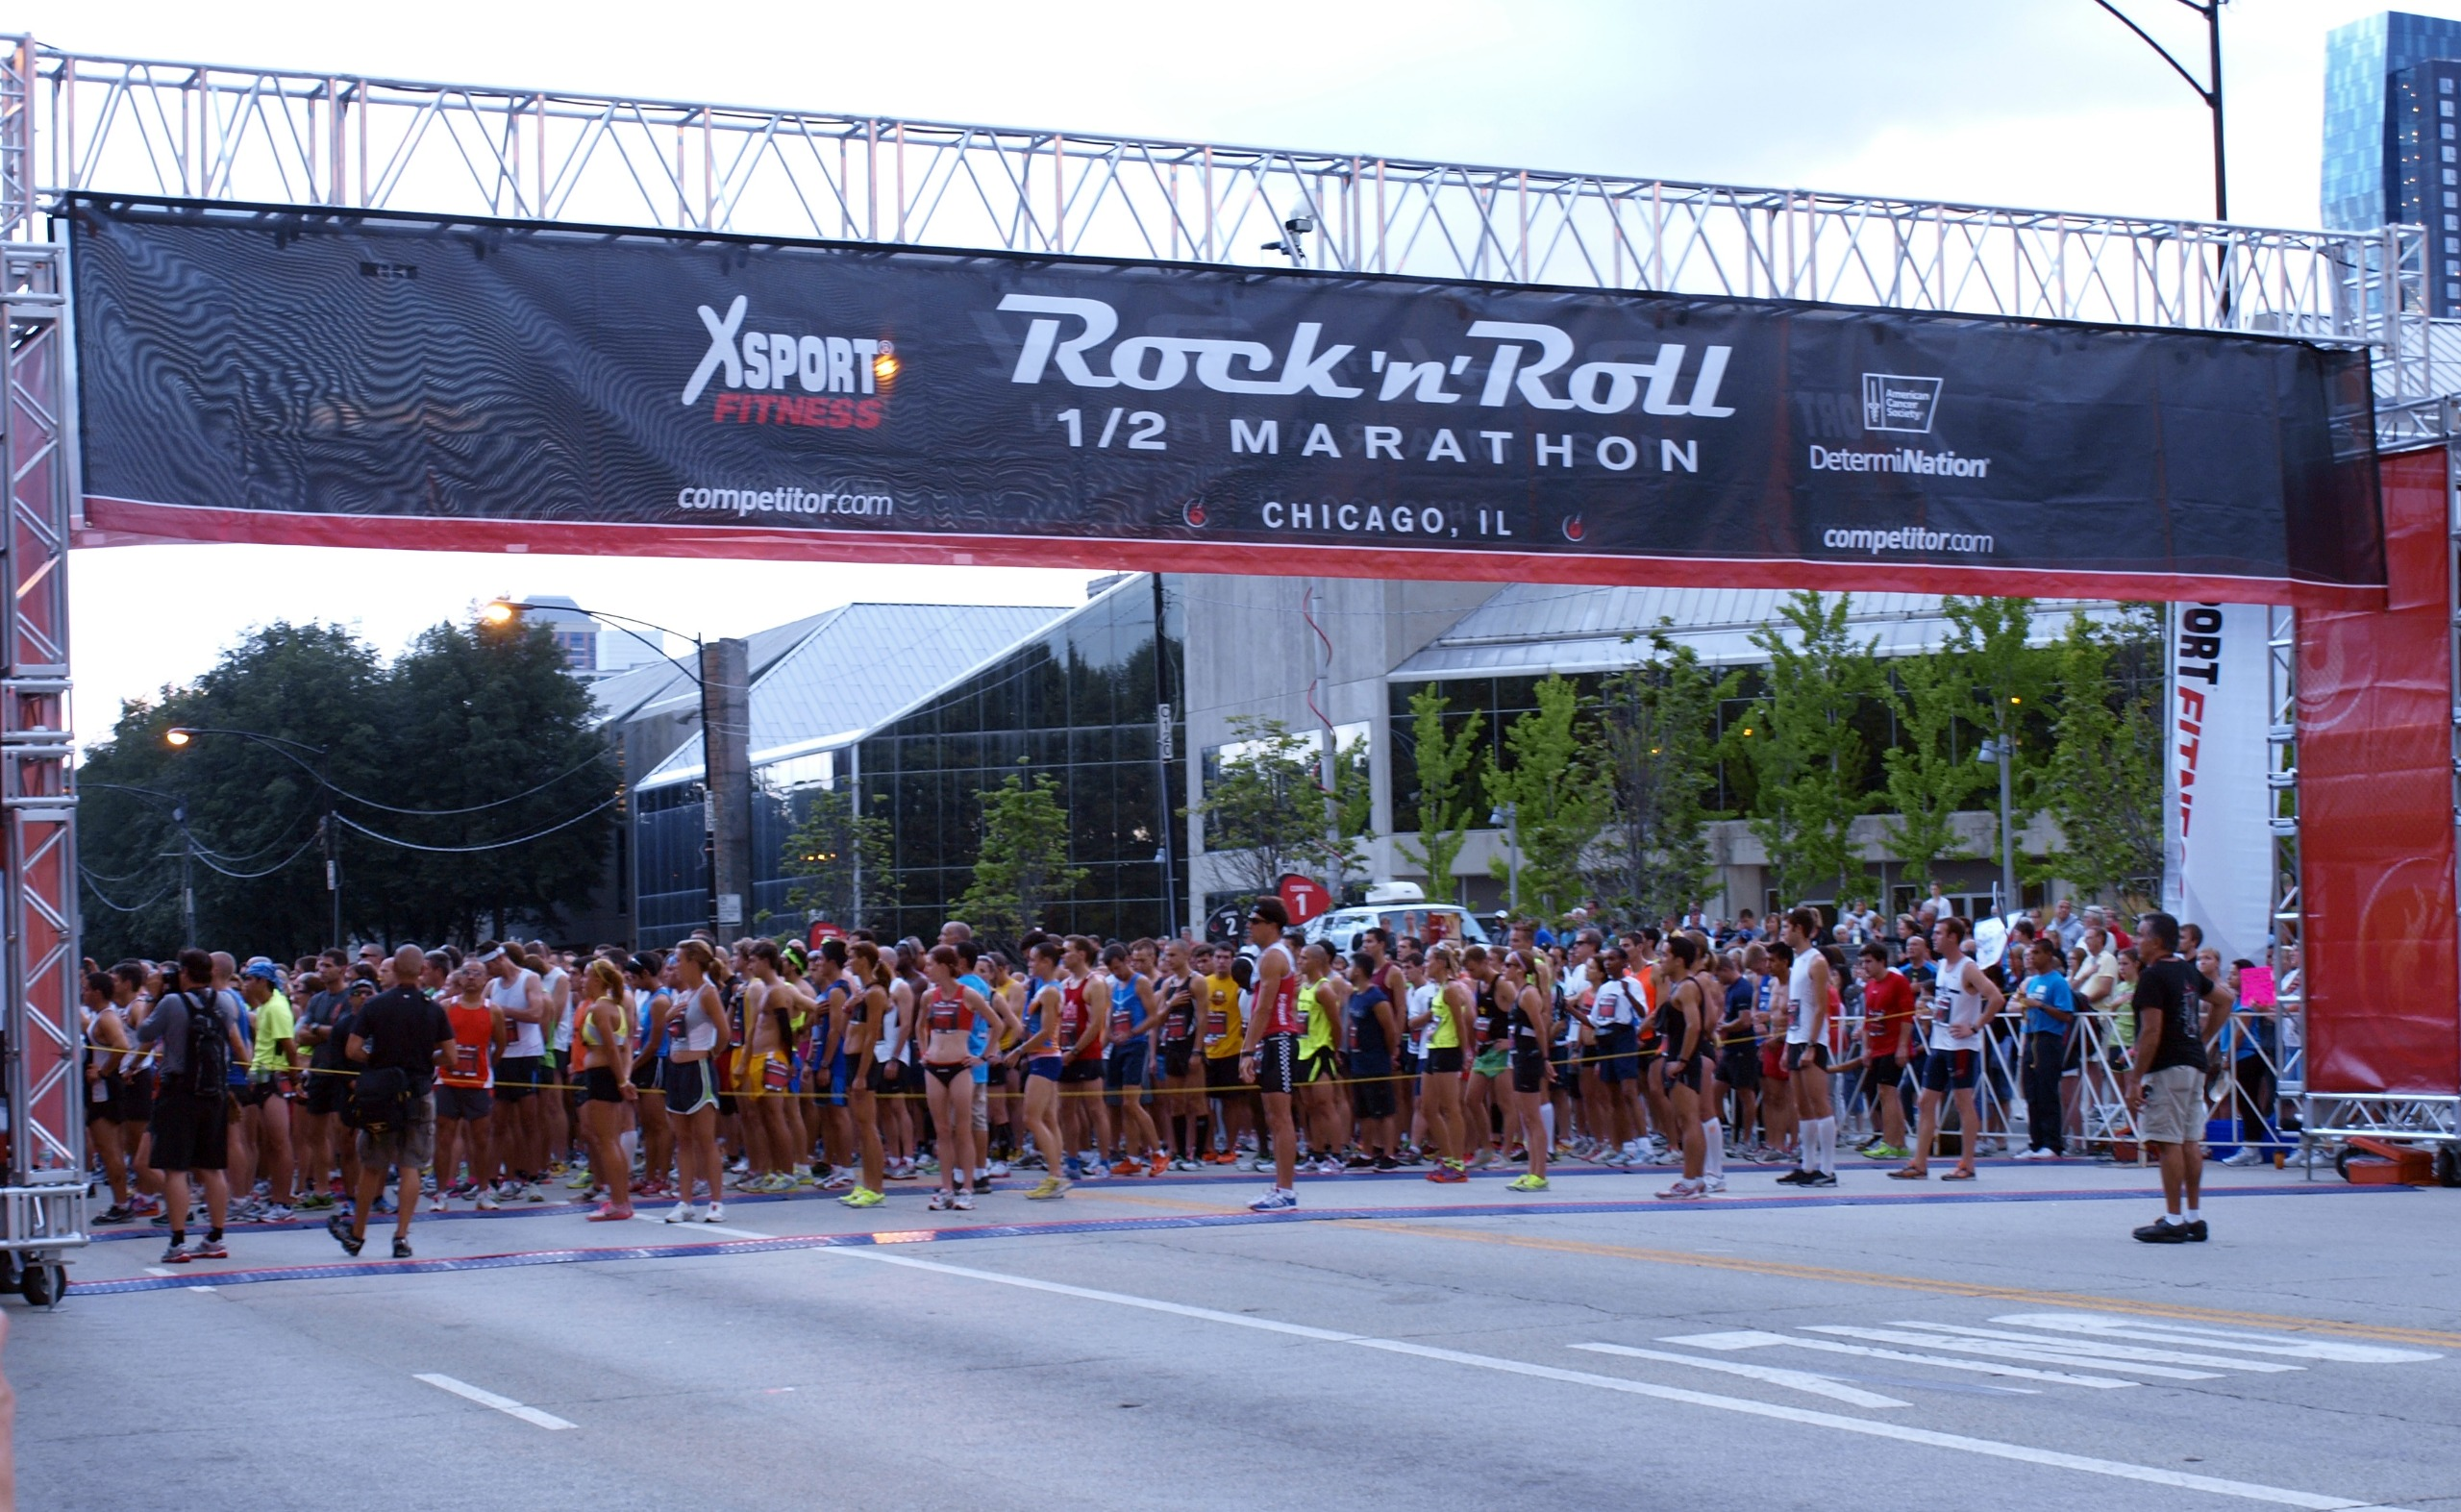 Race Recap: Chicago Rock 'n' Roll 1/2 Marathon